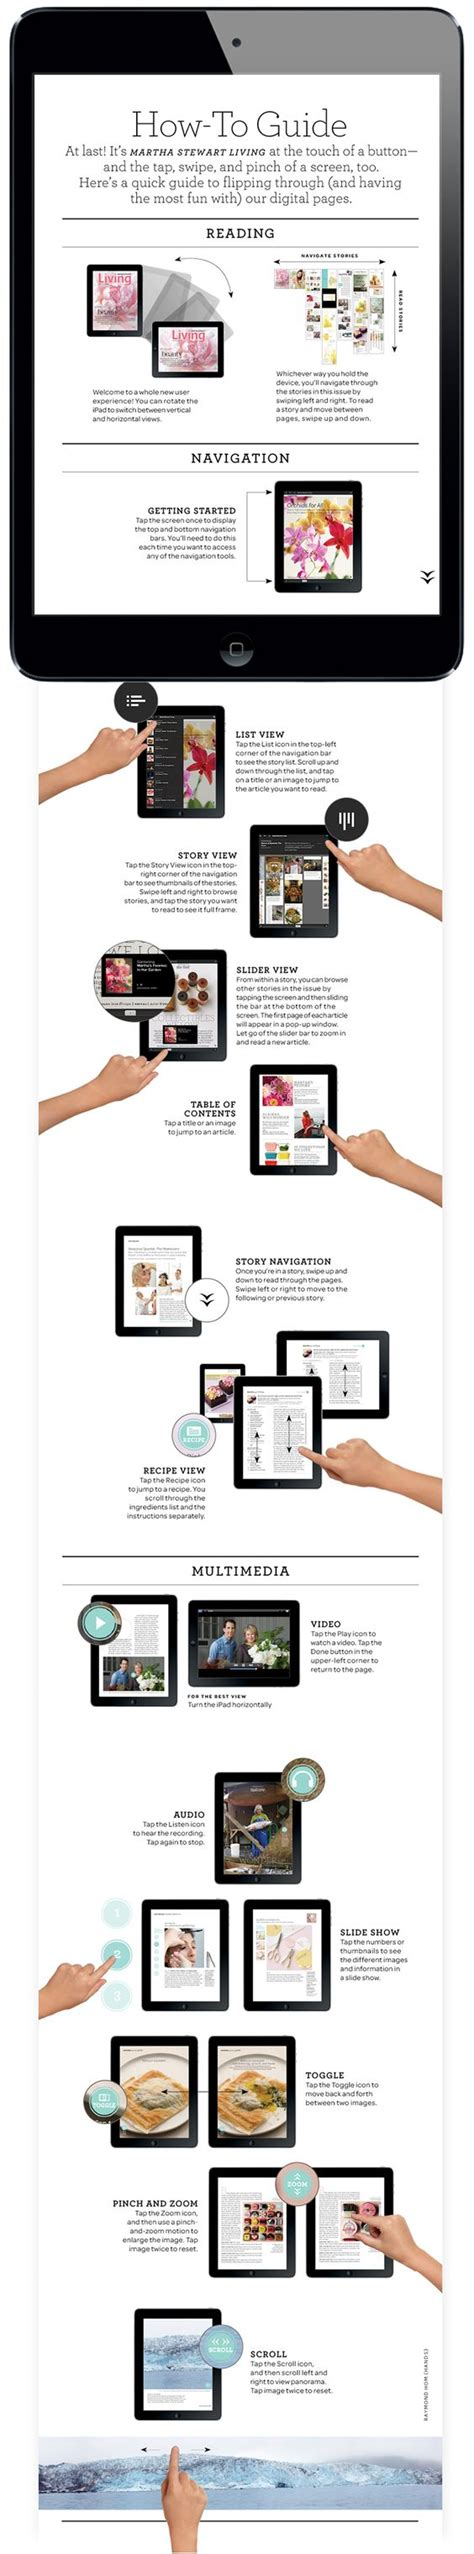 magazine design reference app design typography and layout design on pinterest